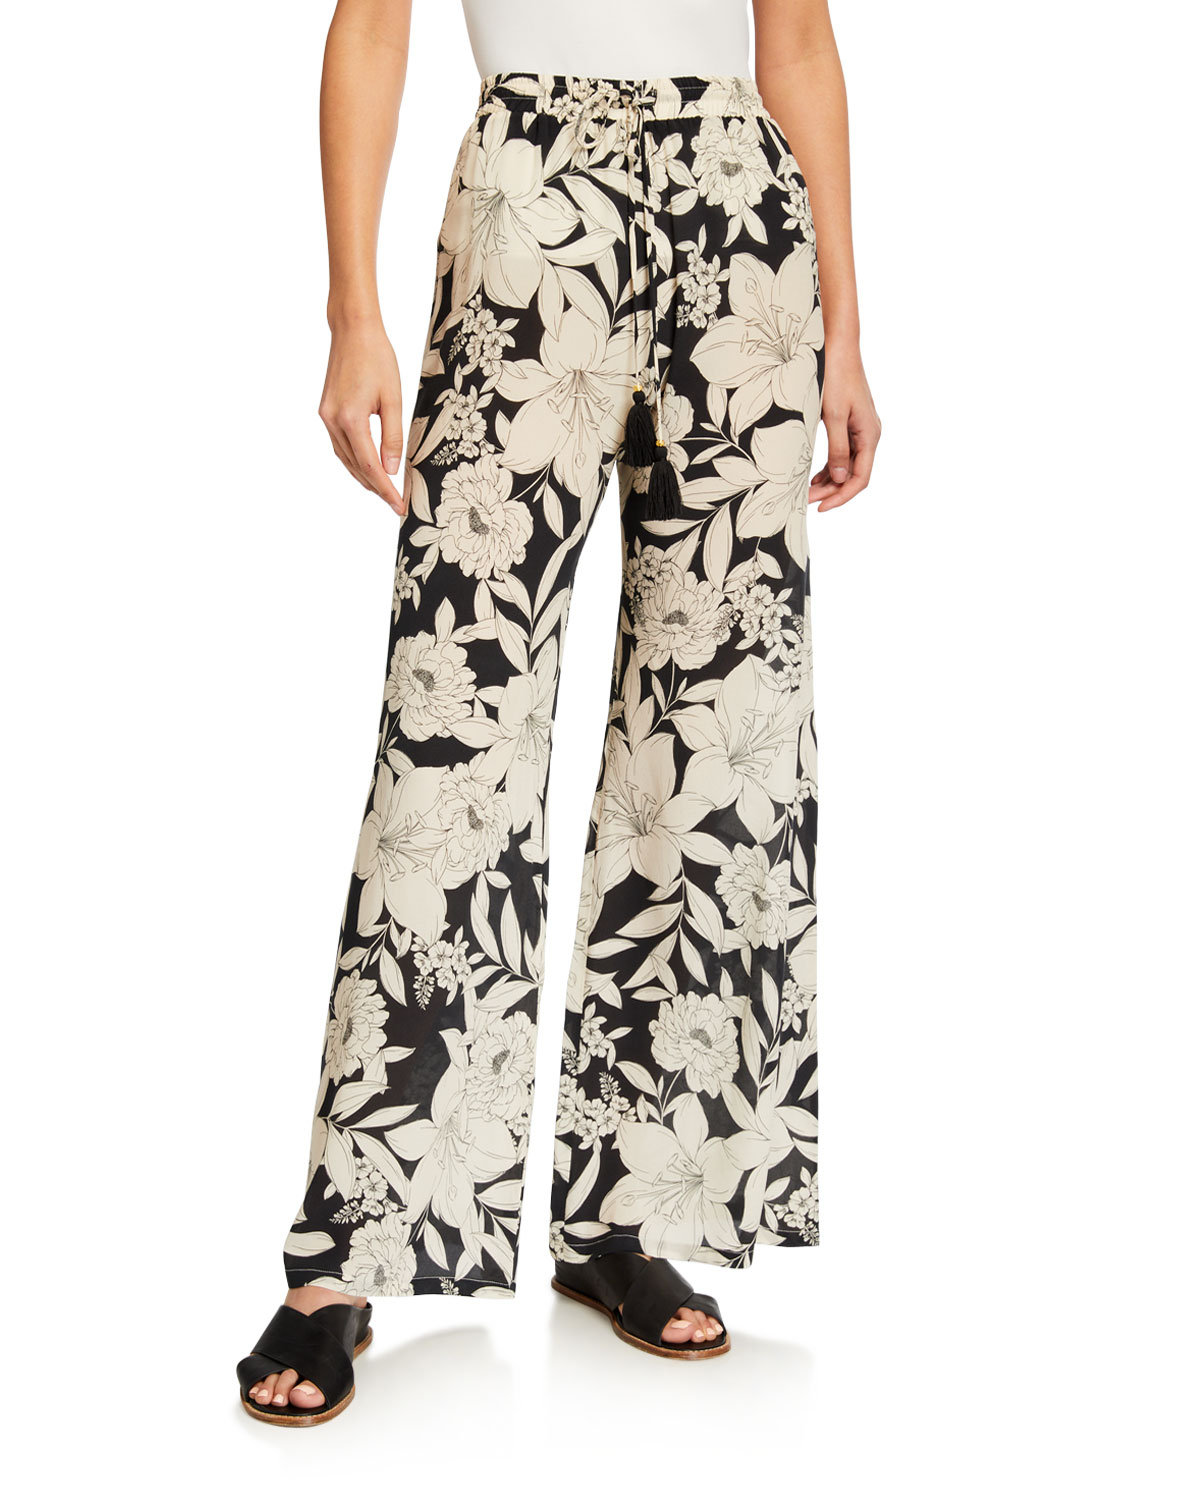 Johnny Was PLUS SIZE CLEMENCE FLORAL-PRINT EASY PANTS